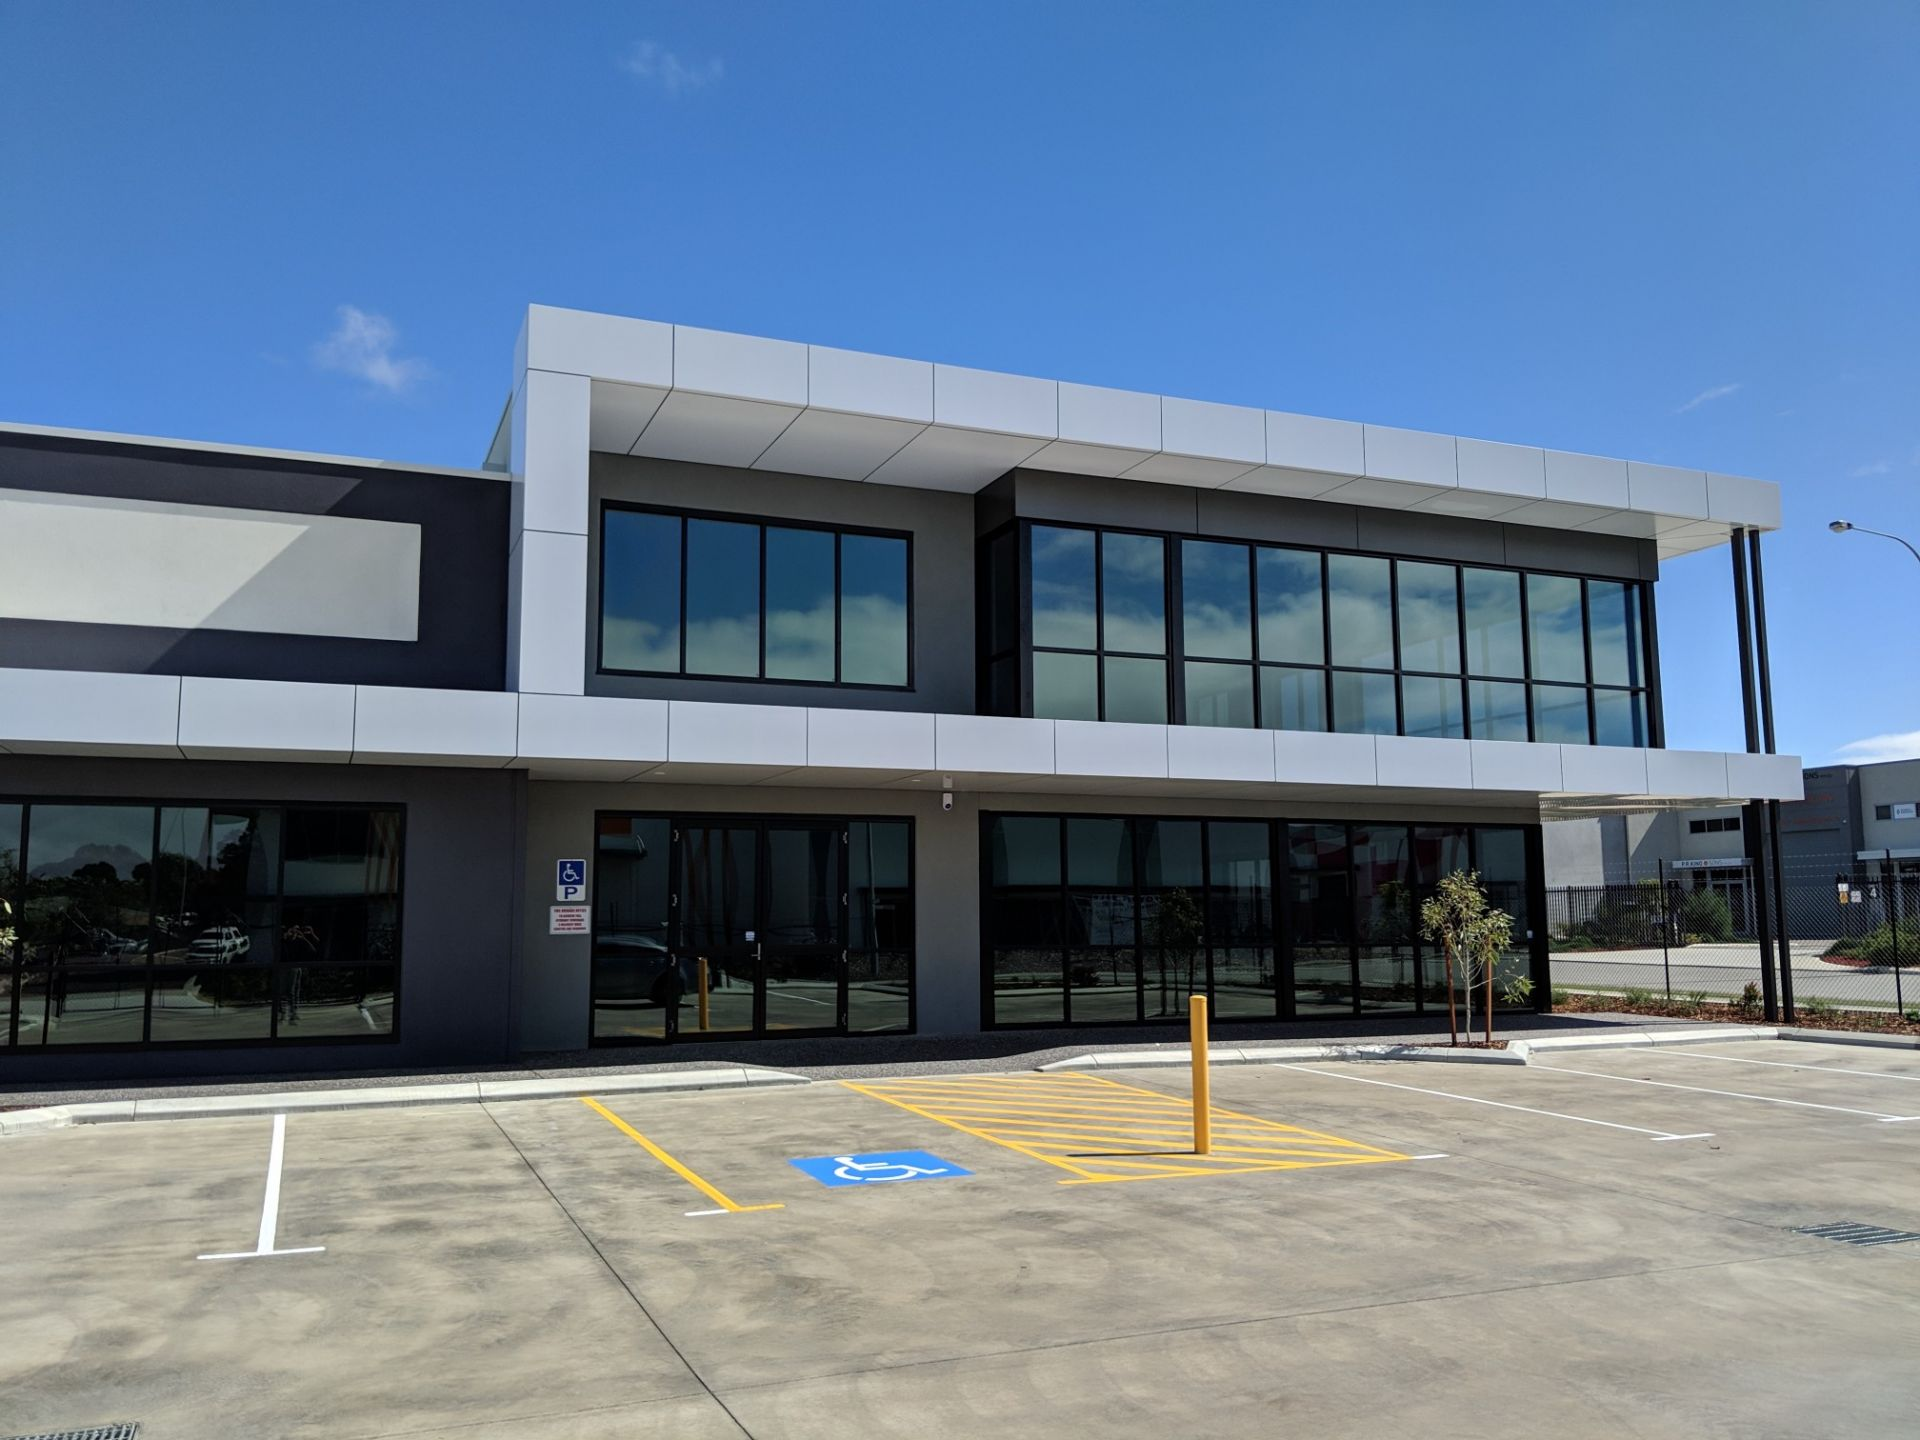 STAND ALONE OFFICE / WAREHOUSE – CORNER LOCATION WITH DUAL STREET ACCESS